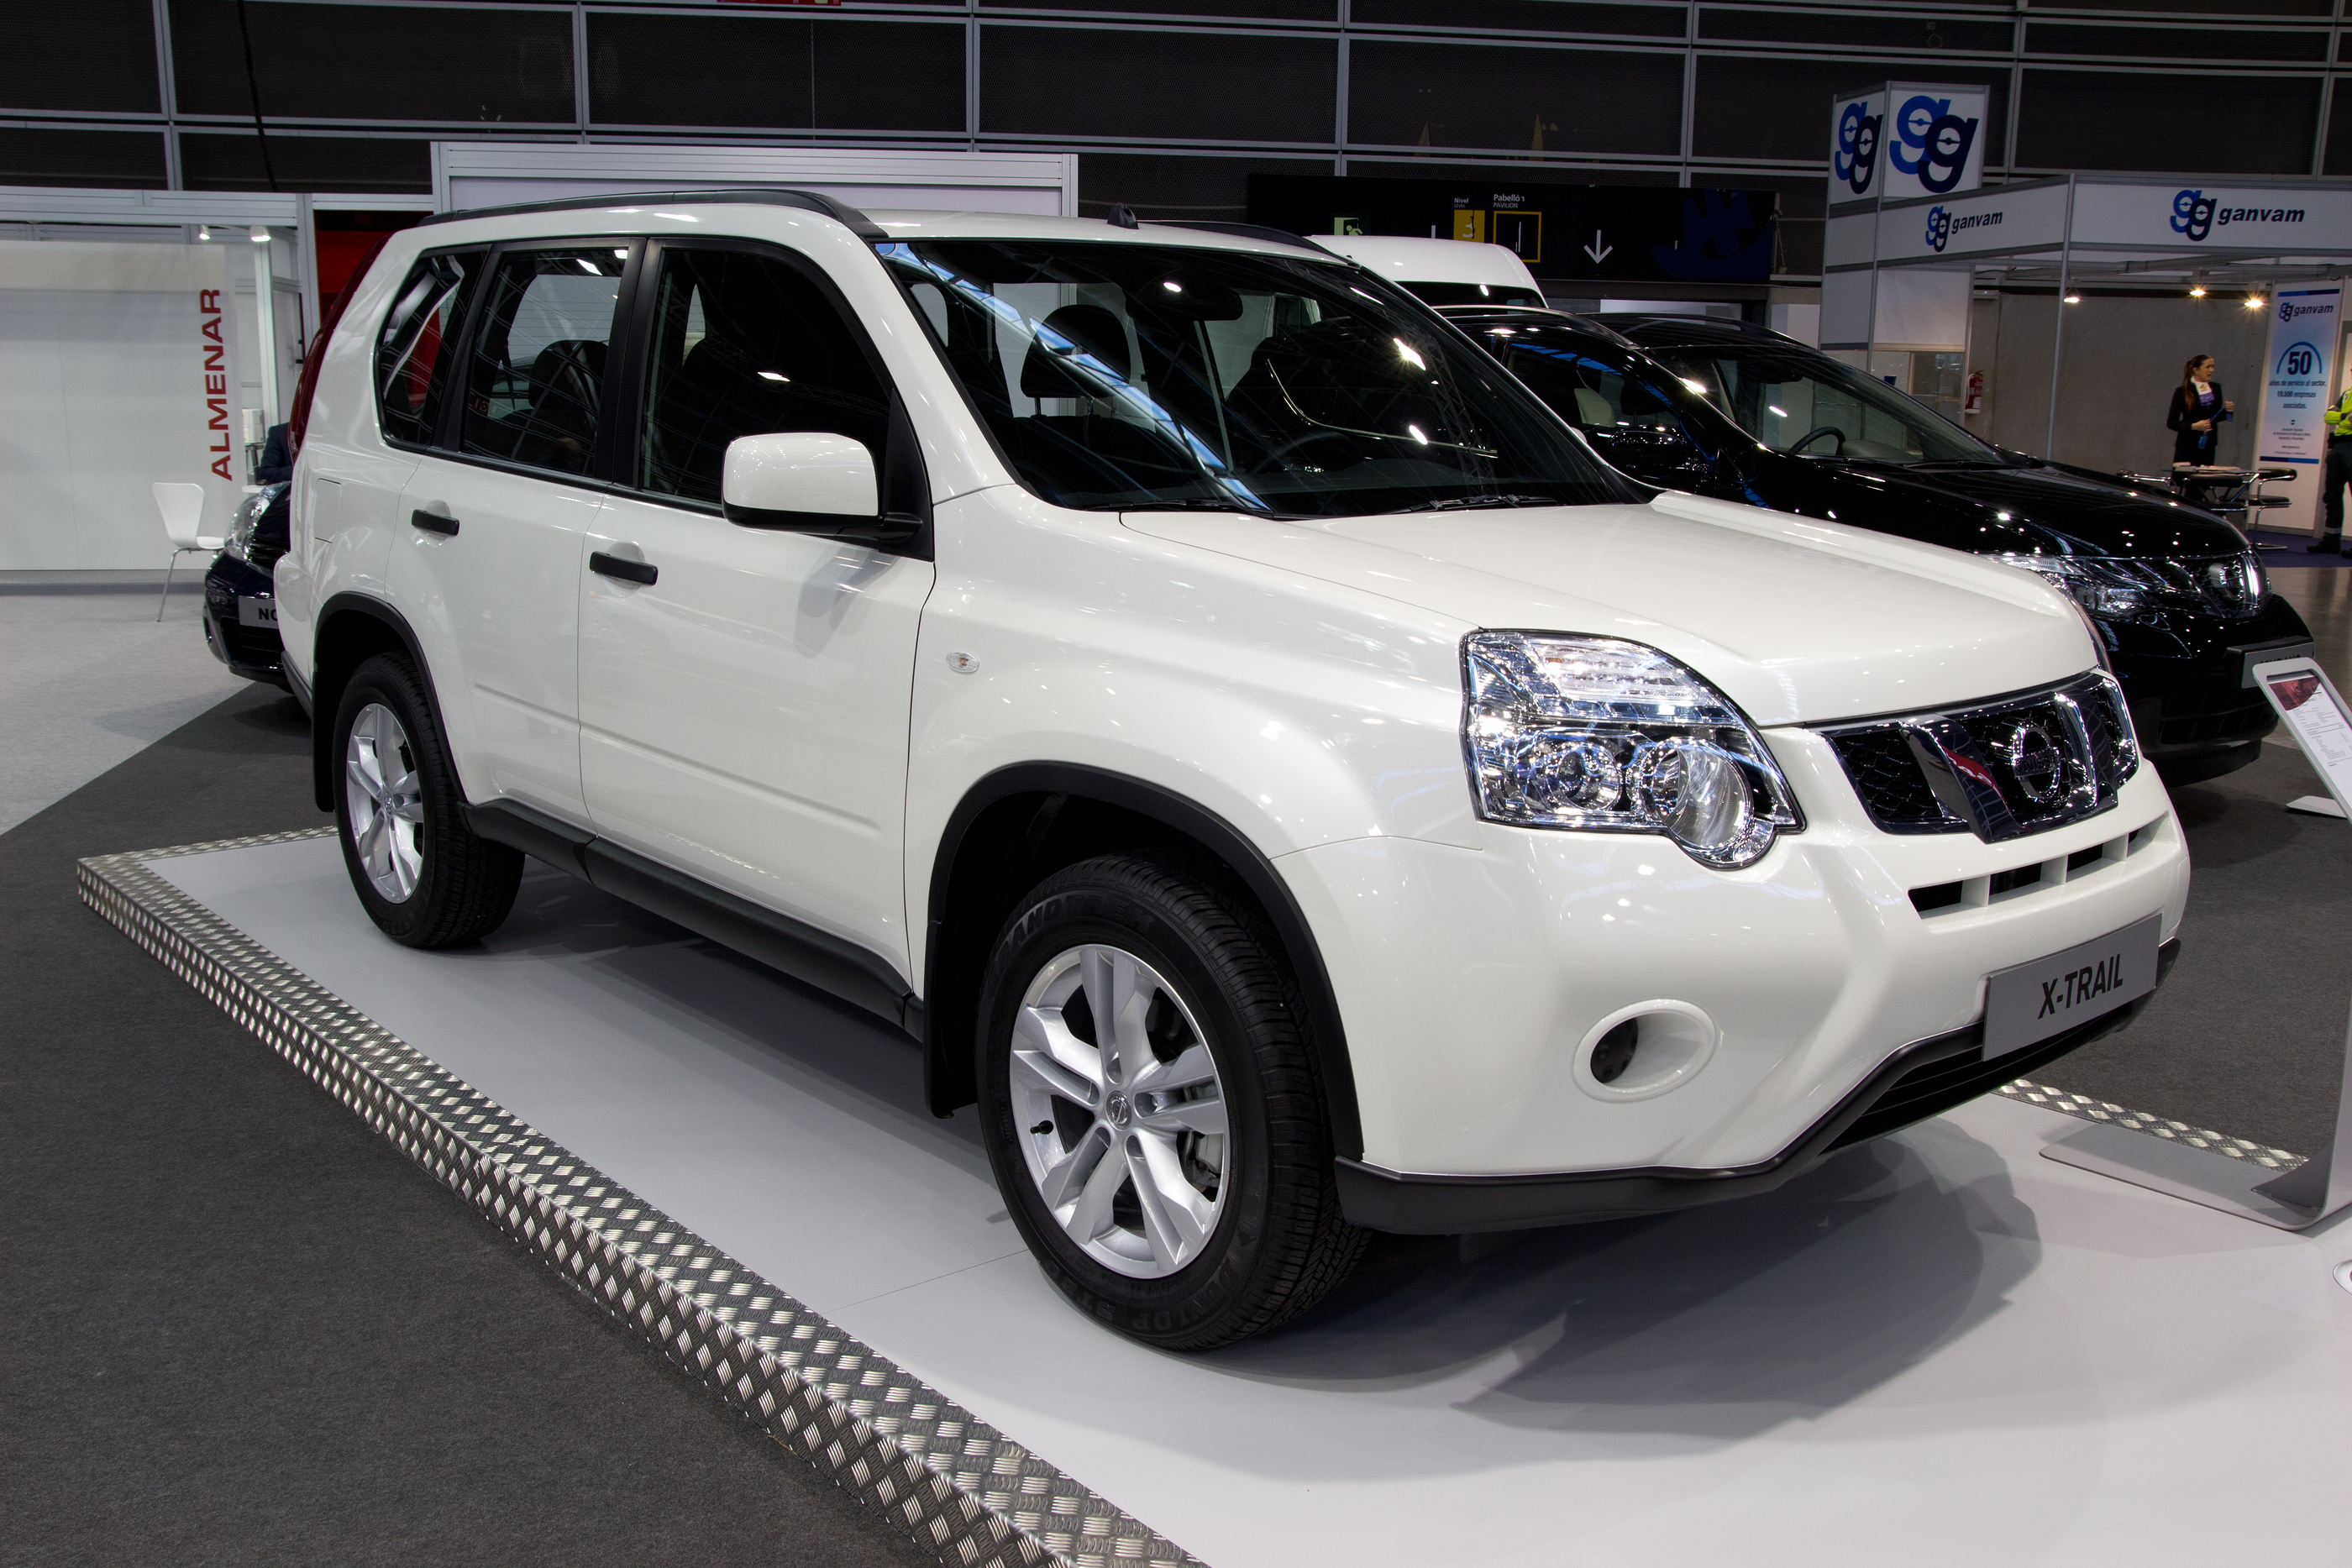 VALENCIA, SPAIN - DECEMBER 5: A 2012 NISSAN X-TRAIL AT THE 2011 VALENCIA CAR SHOW ON DECEMBER 5, 2011 IN VALENCIA, SPAIN. BY ROBWILSON